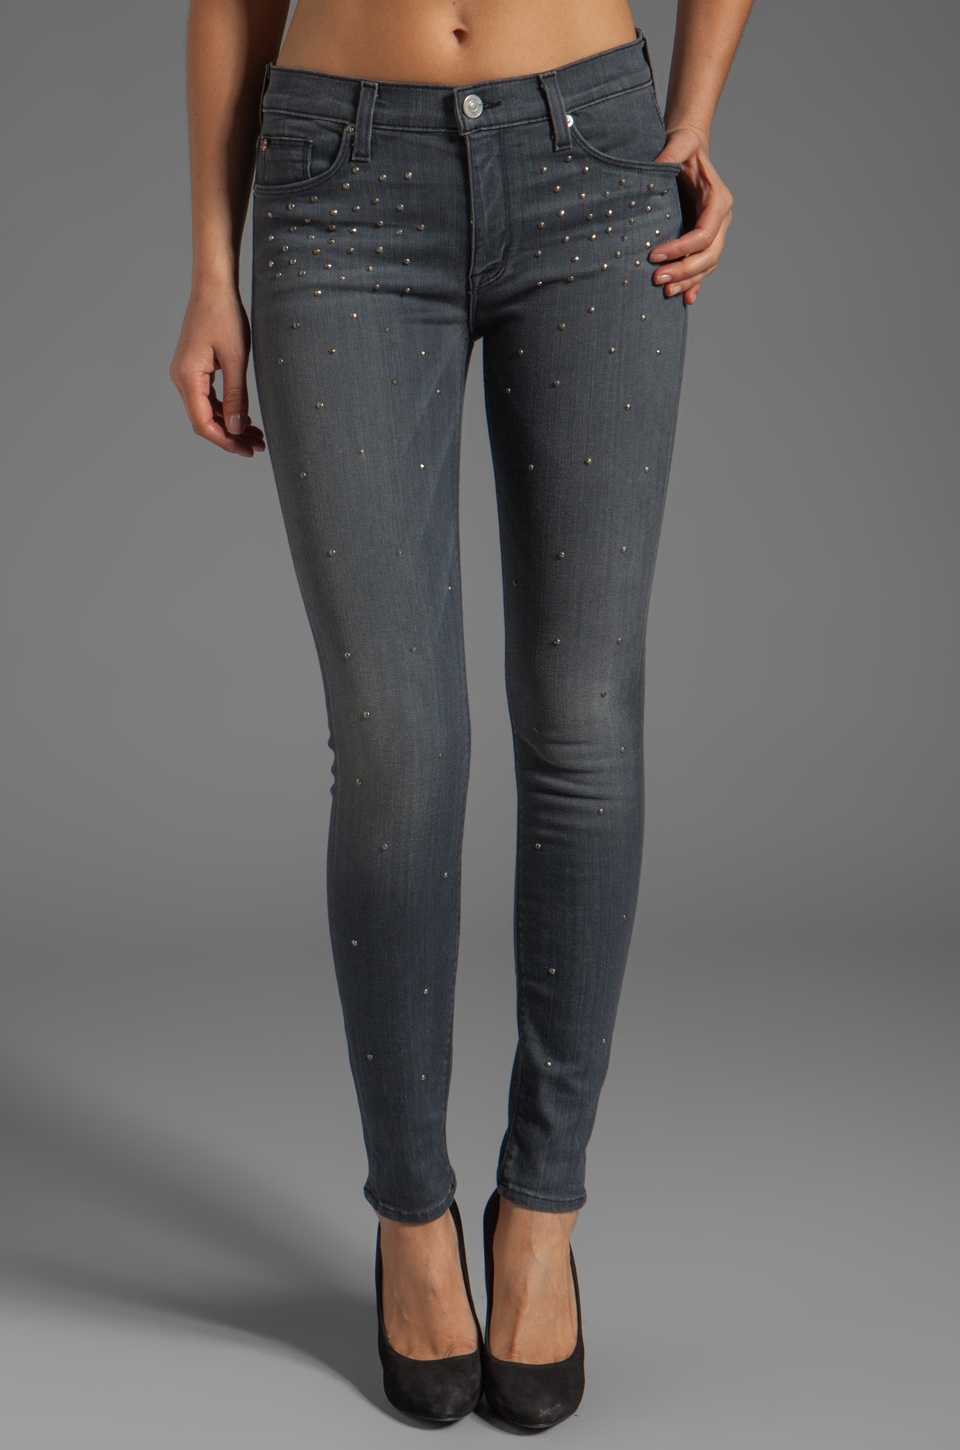 Hudson Jeans Nico Studded Skinny in Alloy